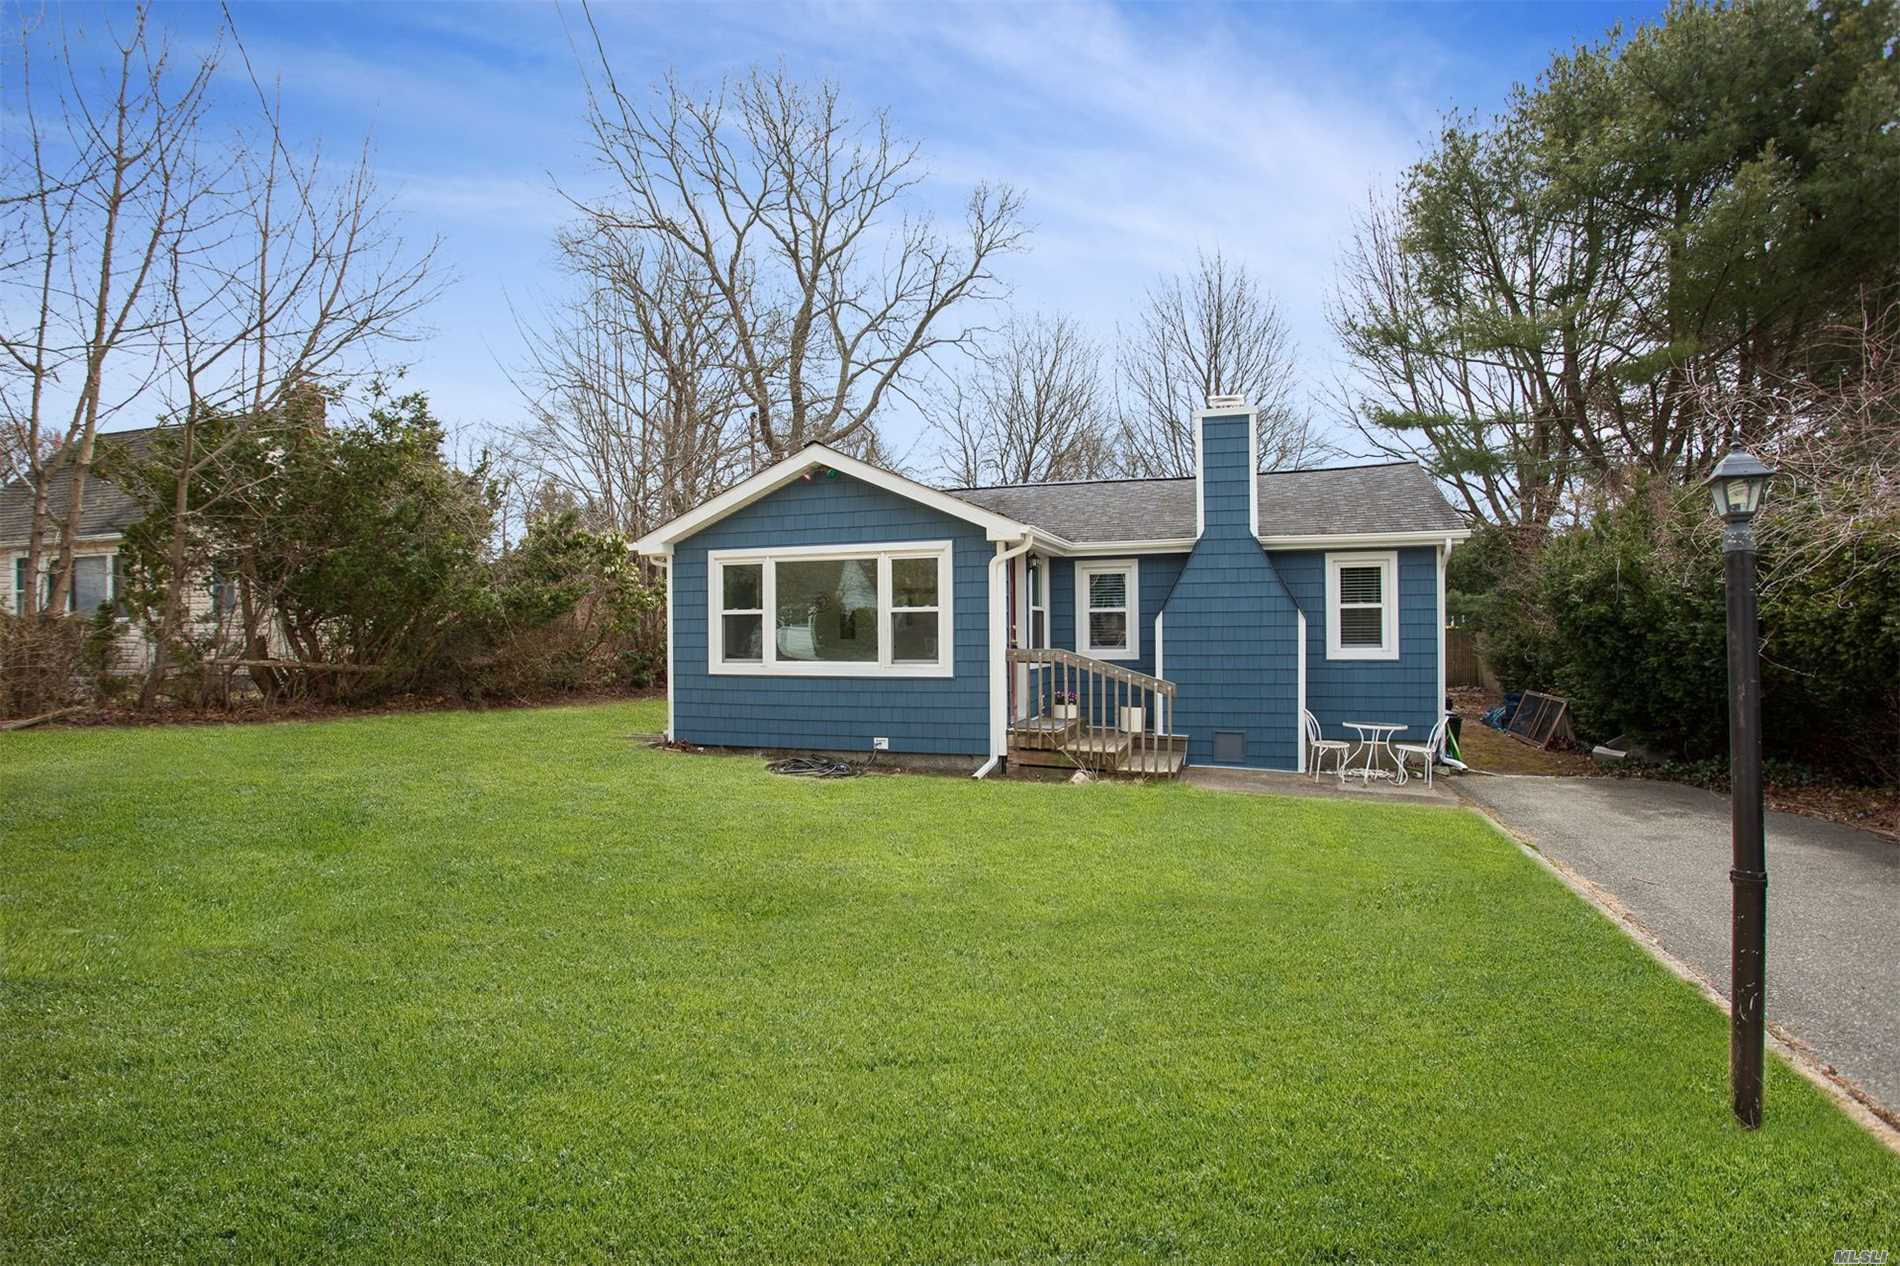 Desirable Patchogue Shores 3 Bedroom 1 Bath Ranch with Heated Enclosed Front Porch, Large Living Room and Dining Room, Eat-In Kitchen. Roth Stainless Steel Oil Tank, New Windows in the last 7-10 Years. Private Community with Club House, Beach Rights and Community Watch!